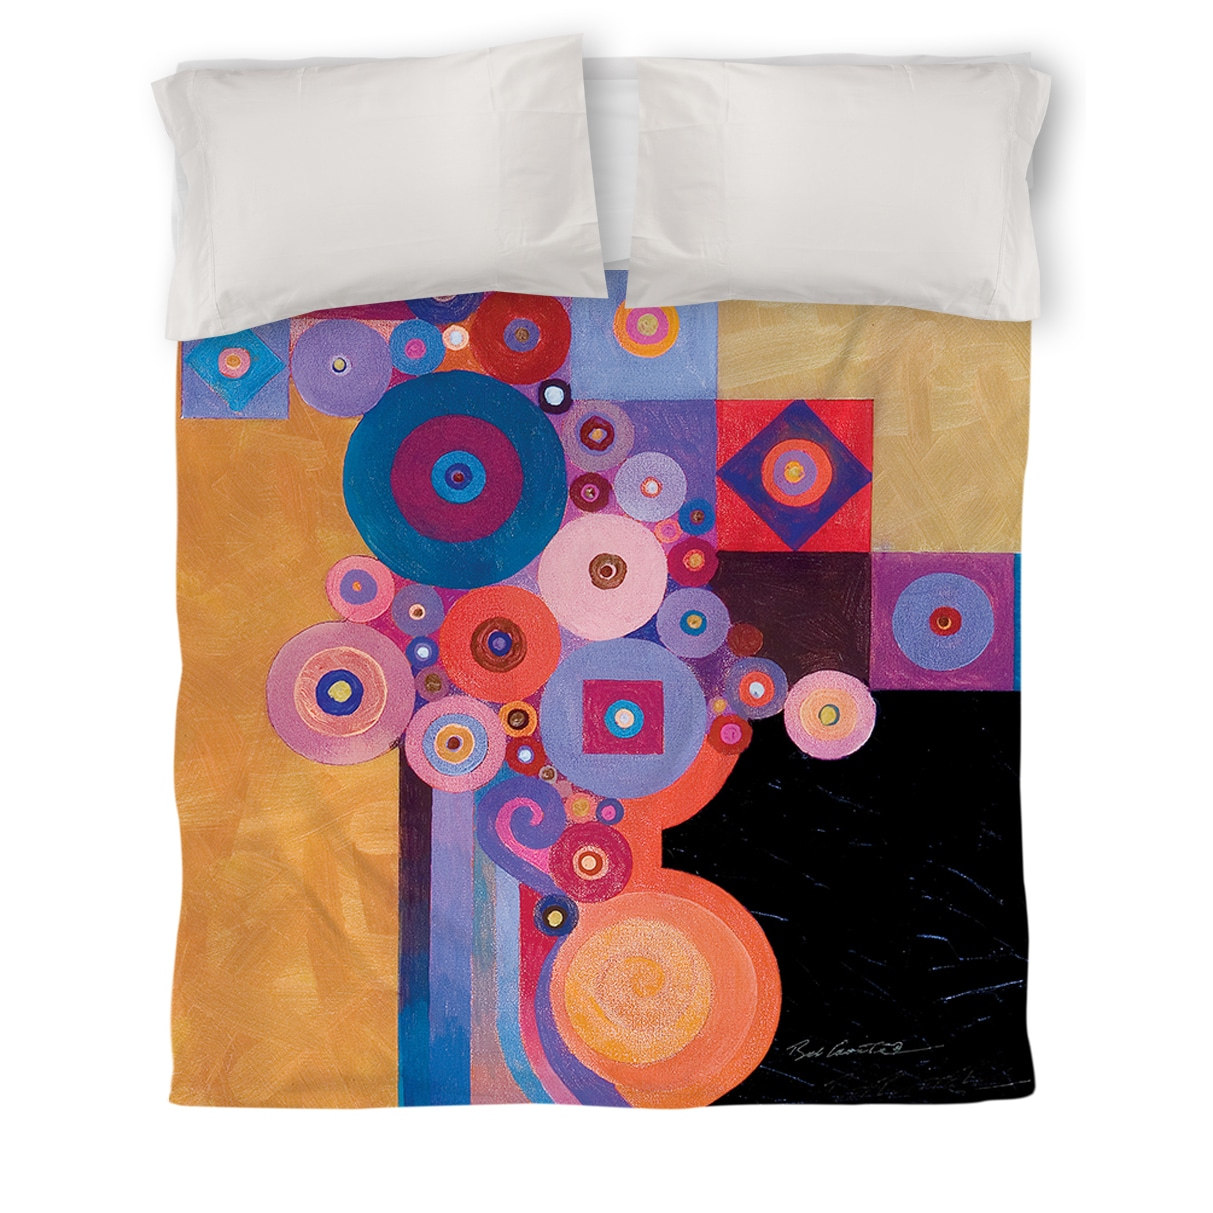 IDG Peg and Spokes Gear Queen Duvet Cover